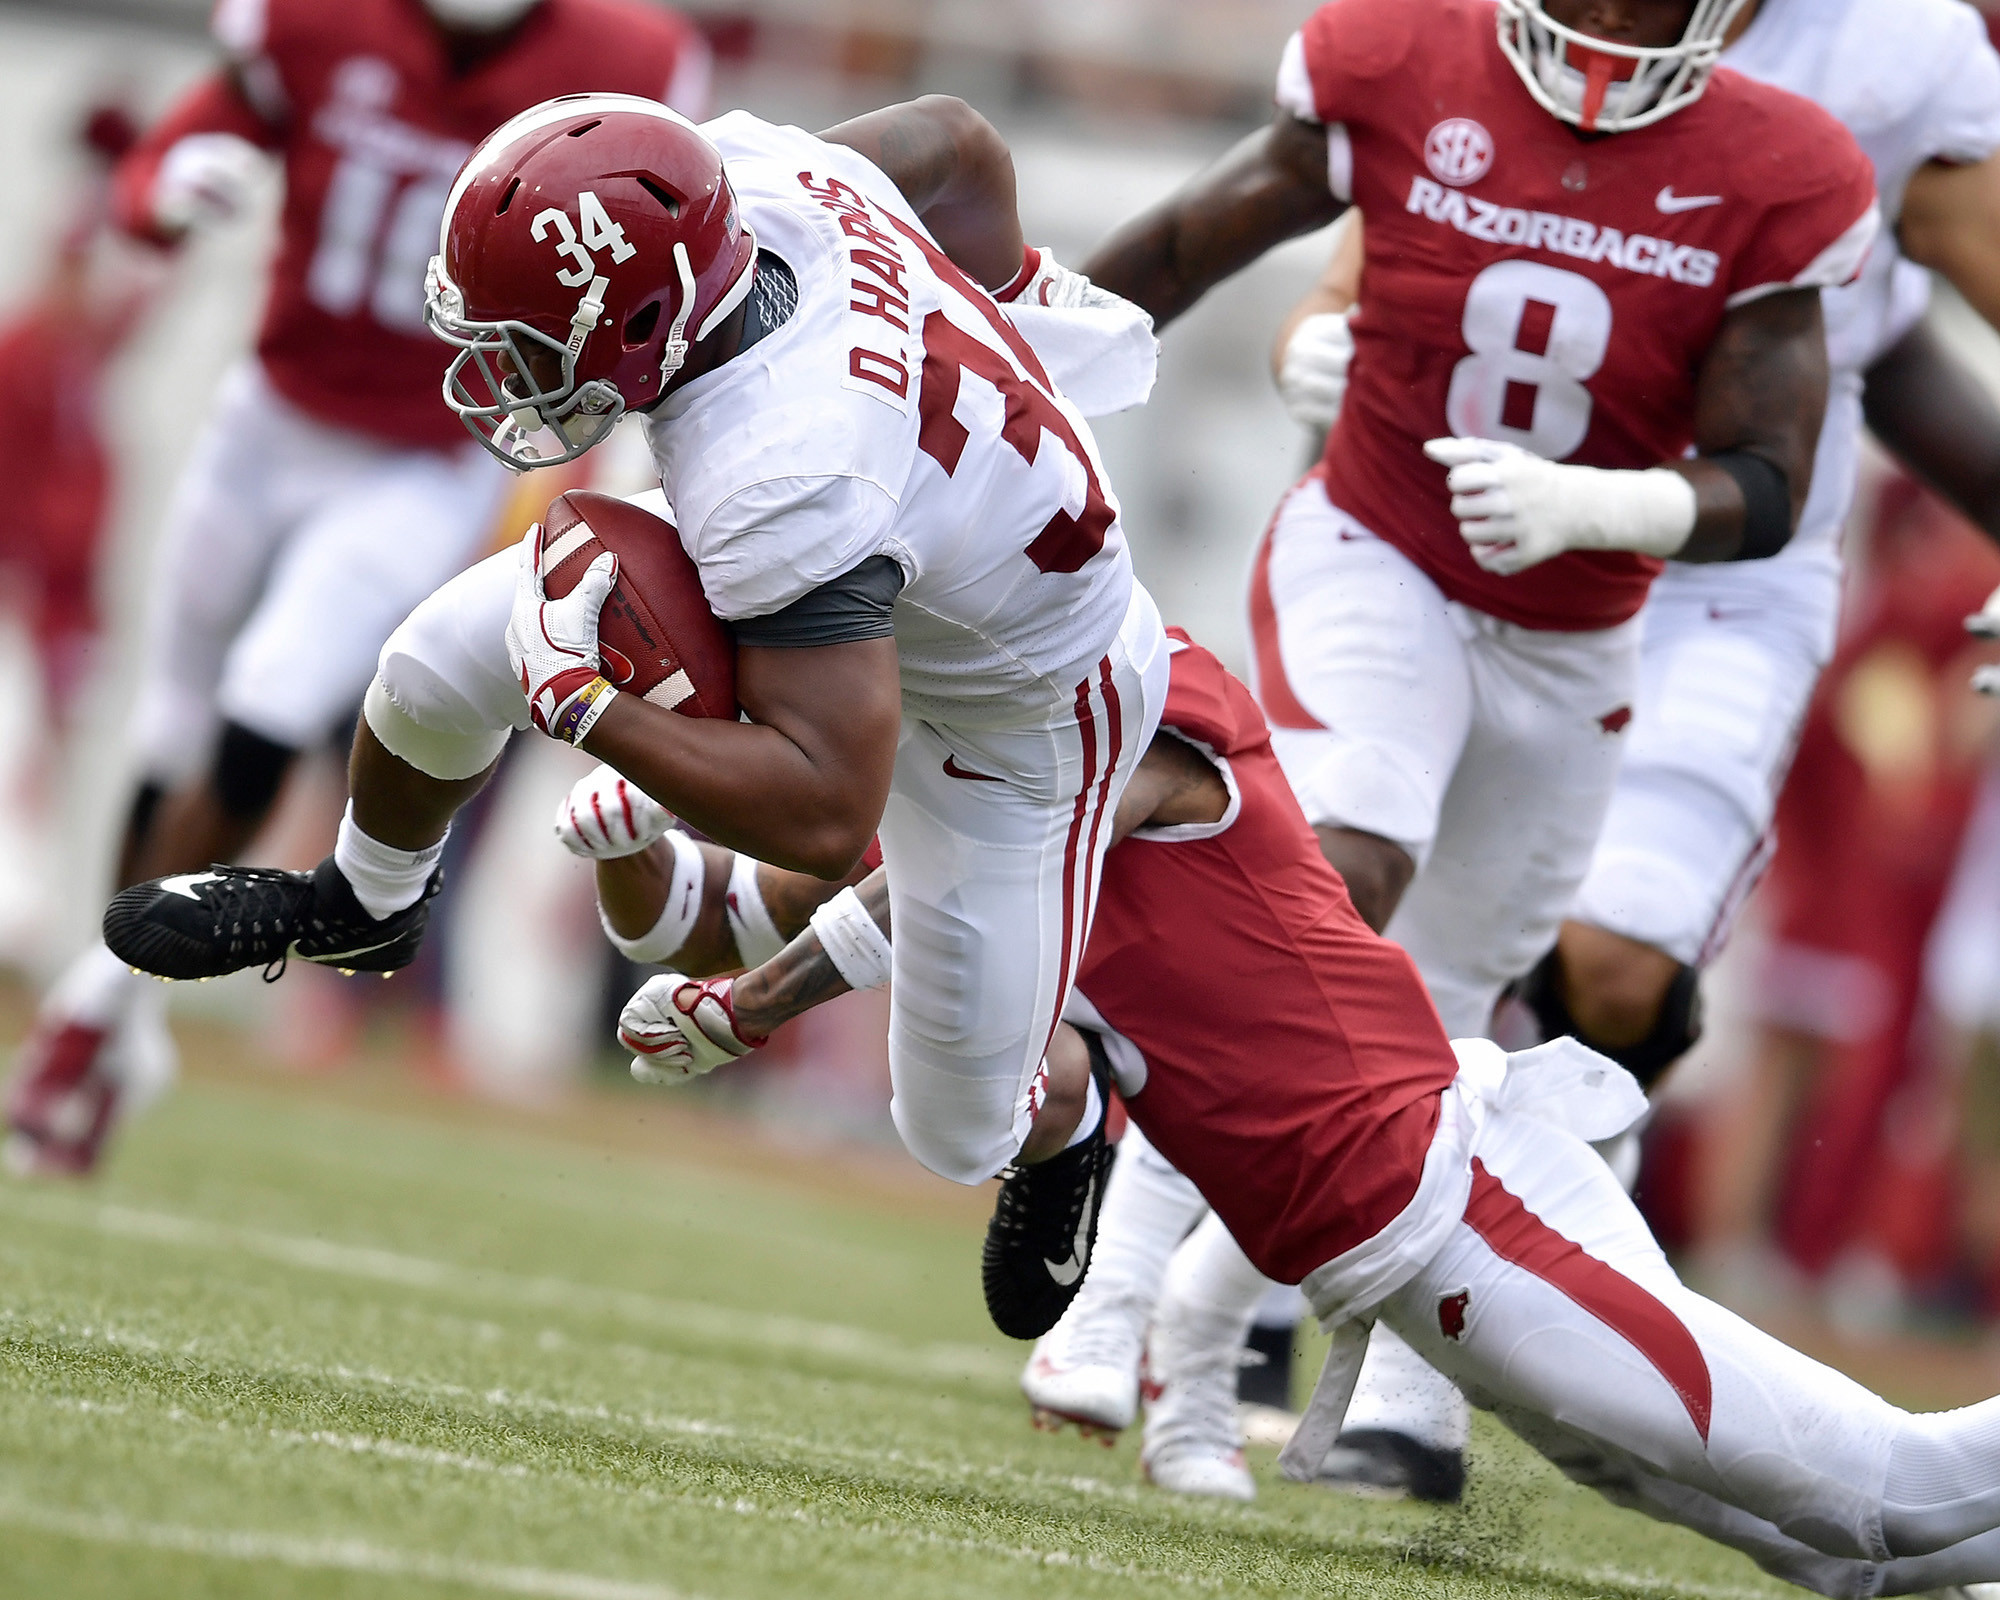 Alabama Crimson Tide running back Damien Harris (34) on a long carry in the first half of the NCAA football game against the Arkansas Razorbacks at Razorback Stadium on Oct. 6, 2018, in Fayetteville, Ark. Alabama defeated Arkansas 65-31. (Photo by Lee Walls)